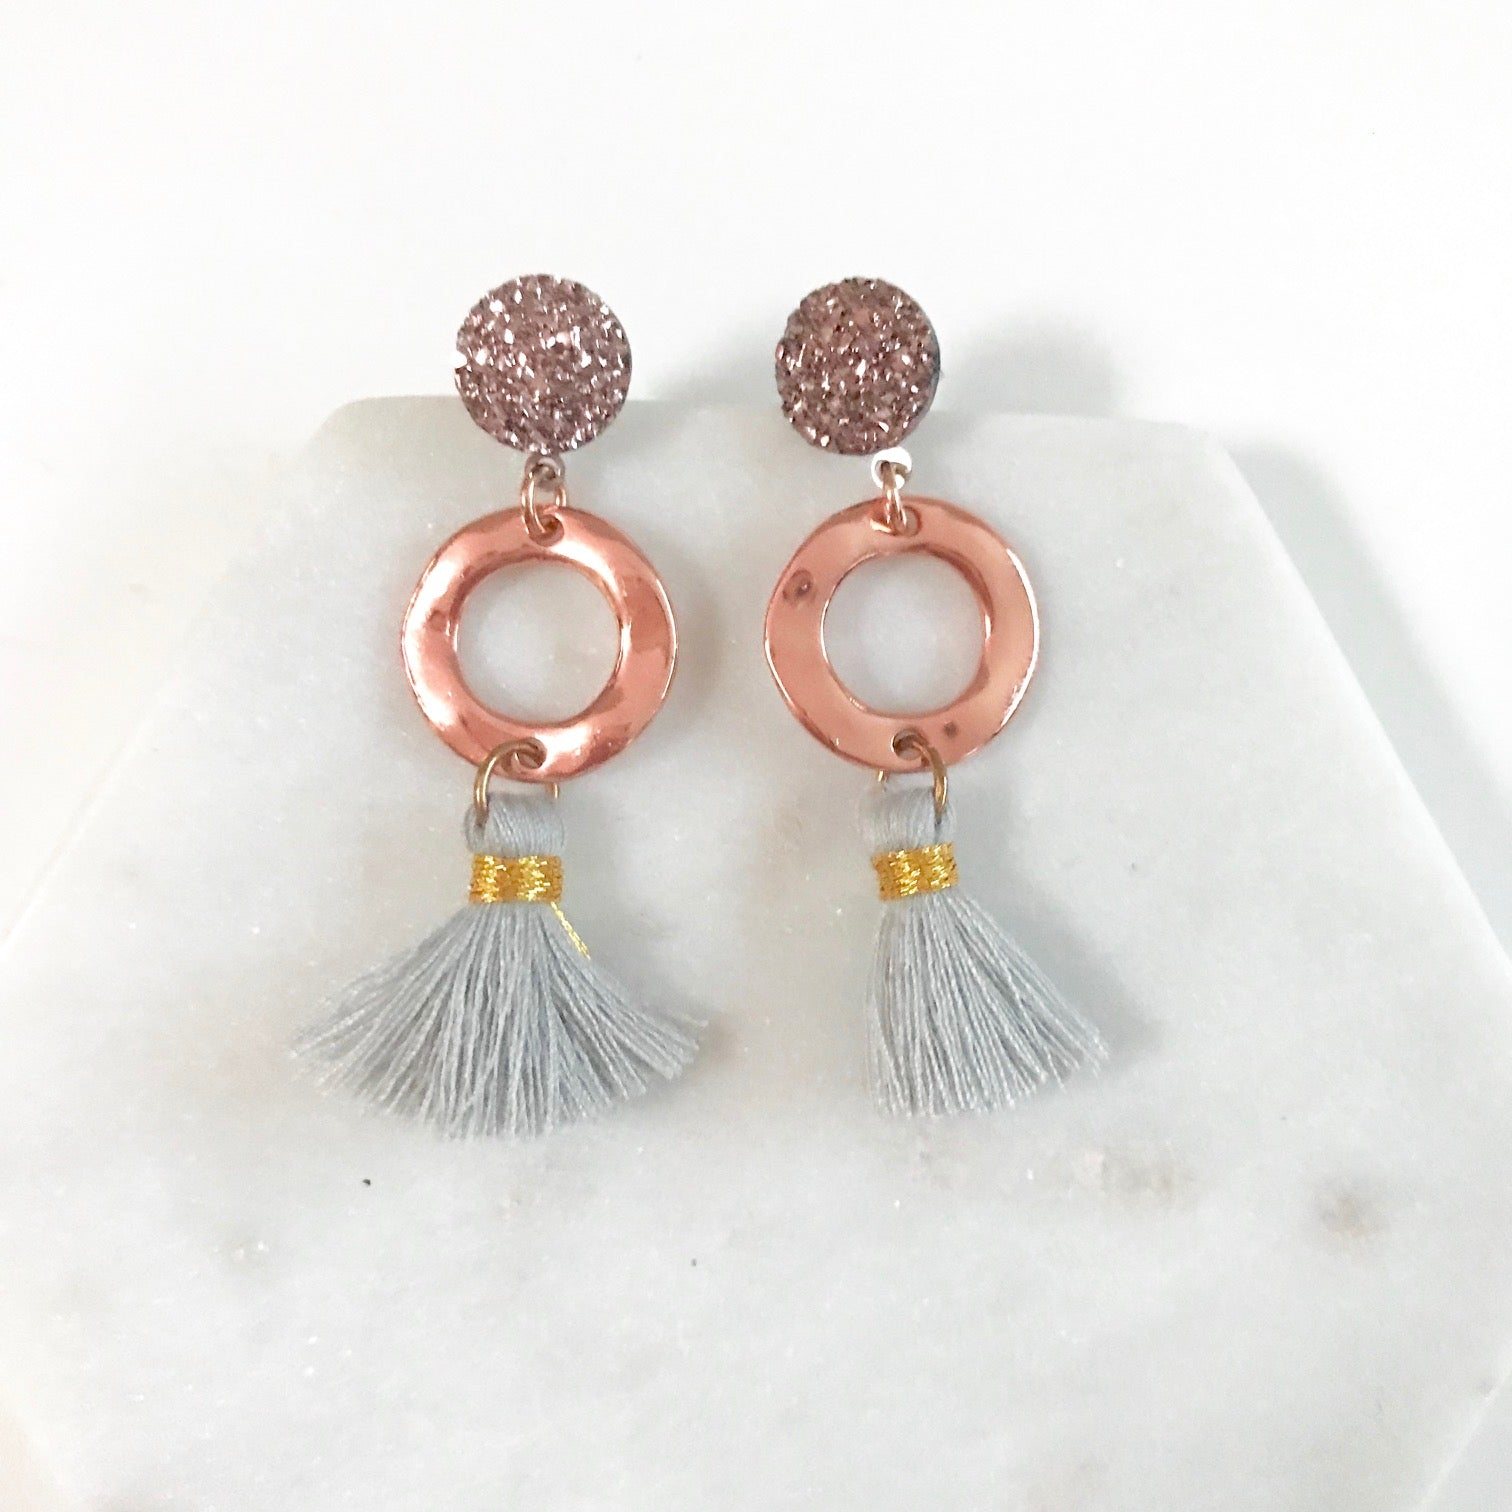 Stargazing Collection - Halo - Tassel Stud Earrings